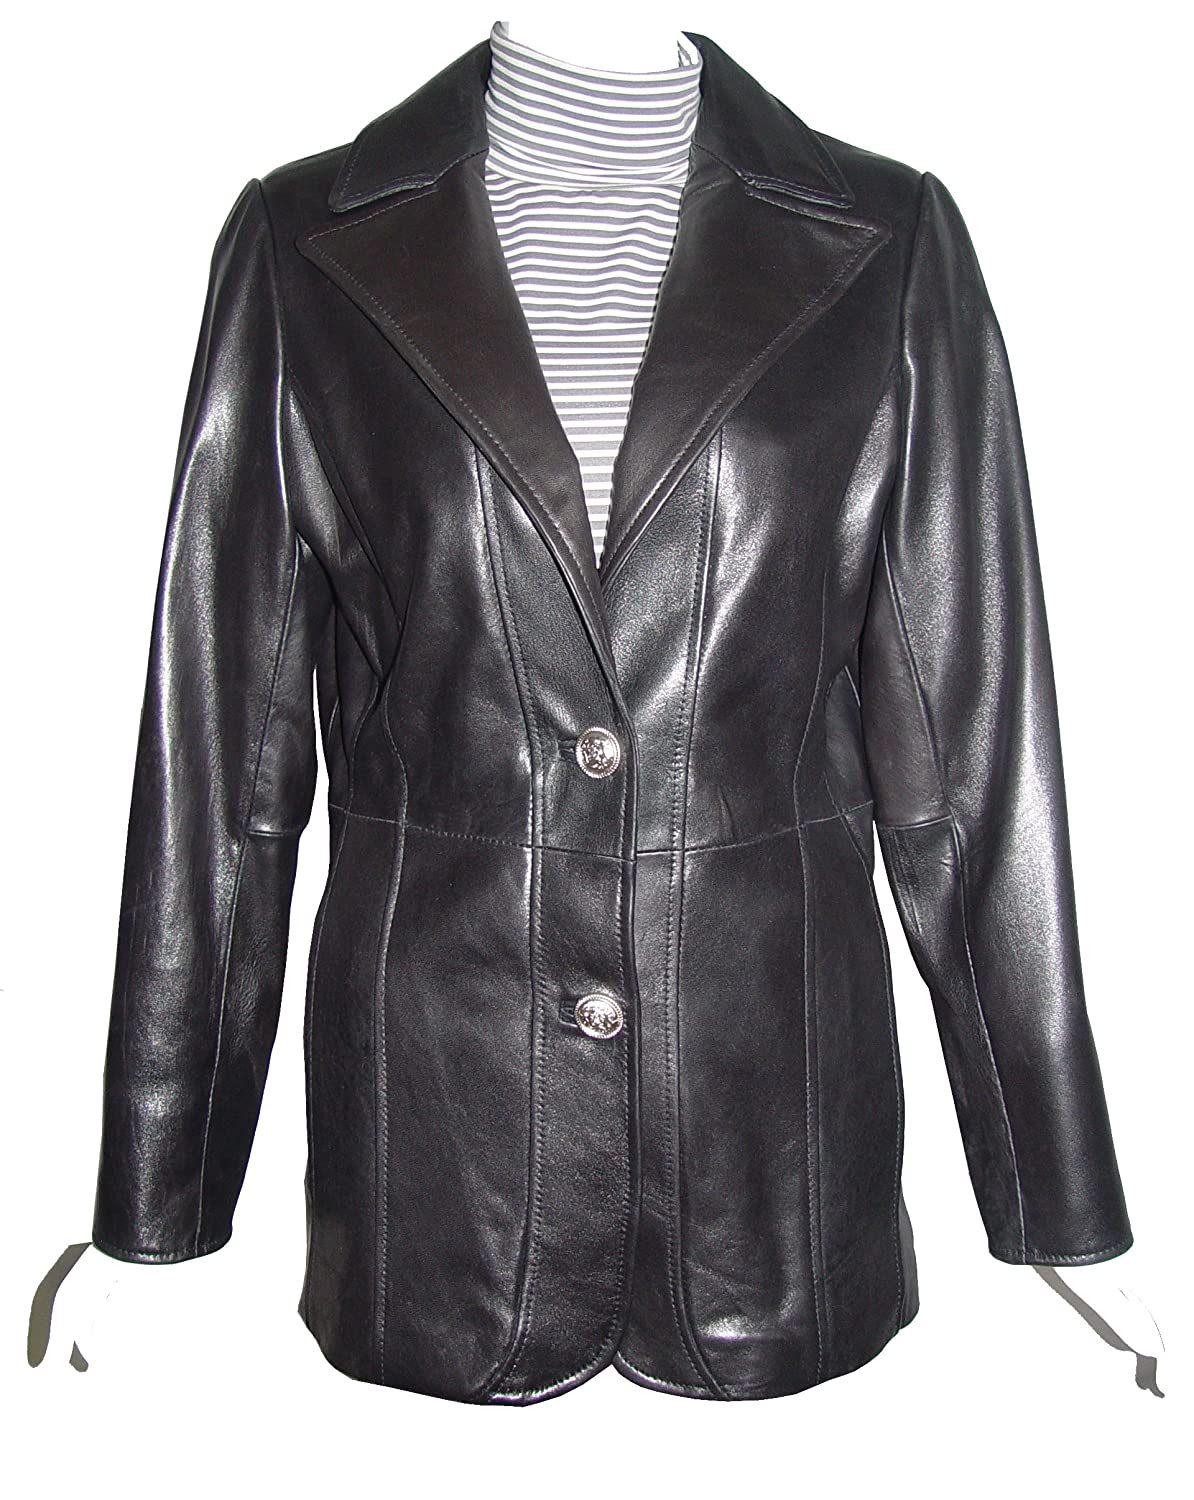 Paccilo Women 4011 Petite Fashion Lambskin Leather Blazer 4011prmphrzblzptt-XS